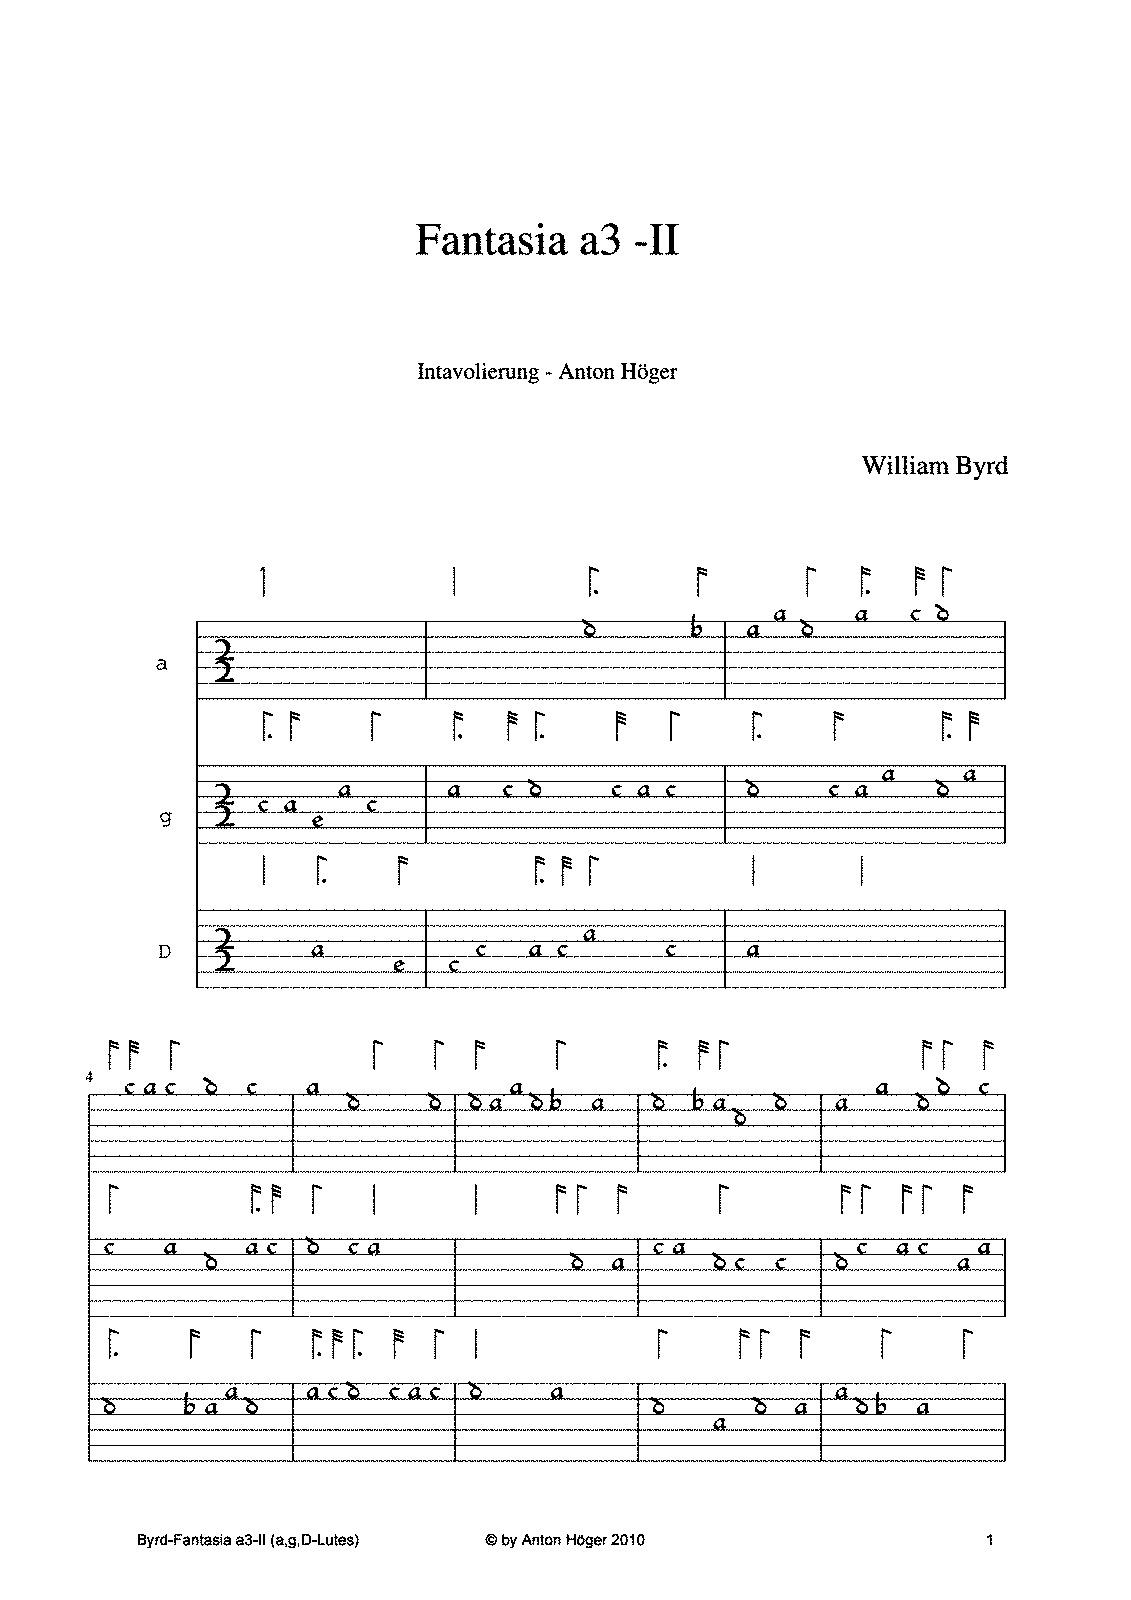 PMLP389658-Byrd, William-Fantasia a3-II (a,g,D-Lutes).pdf